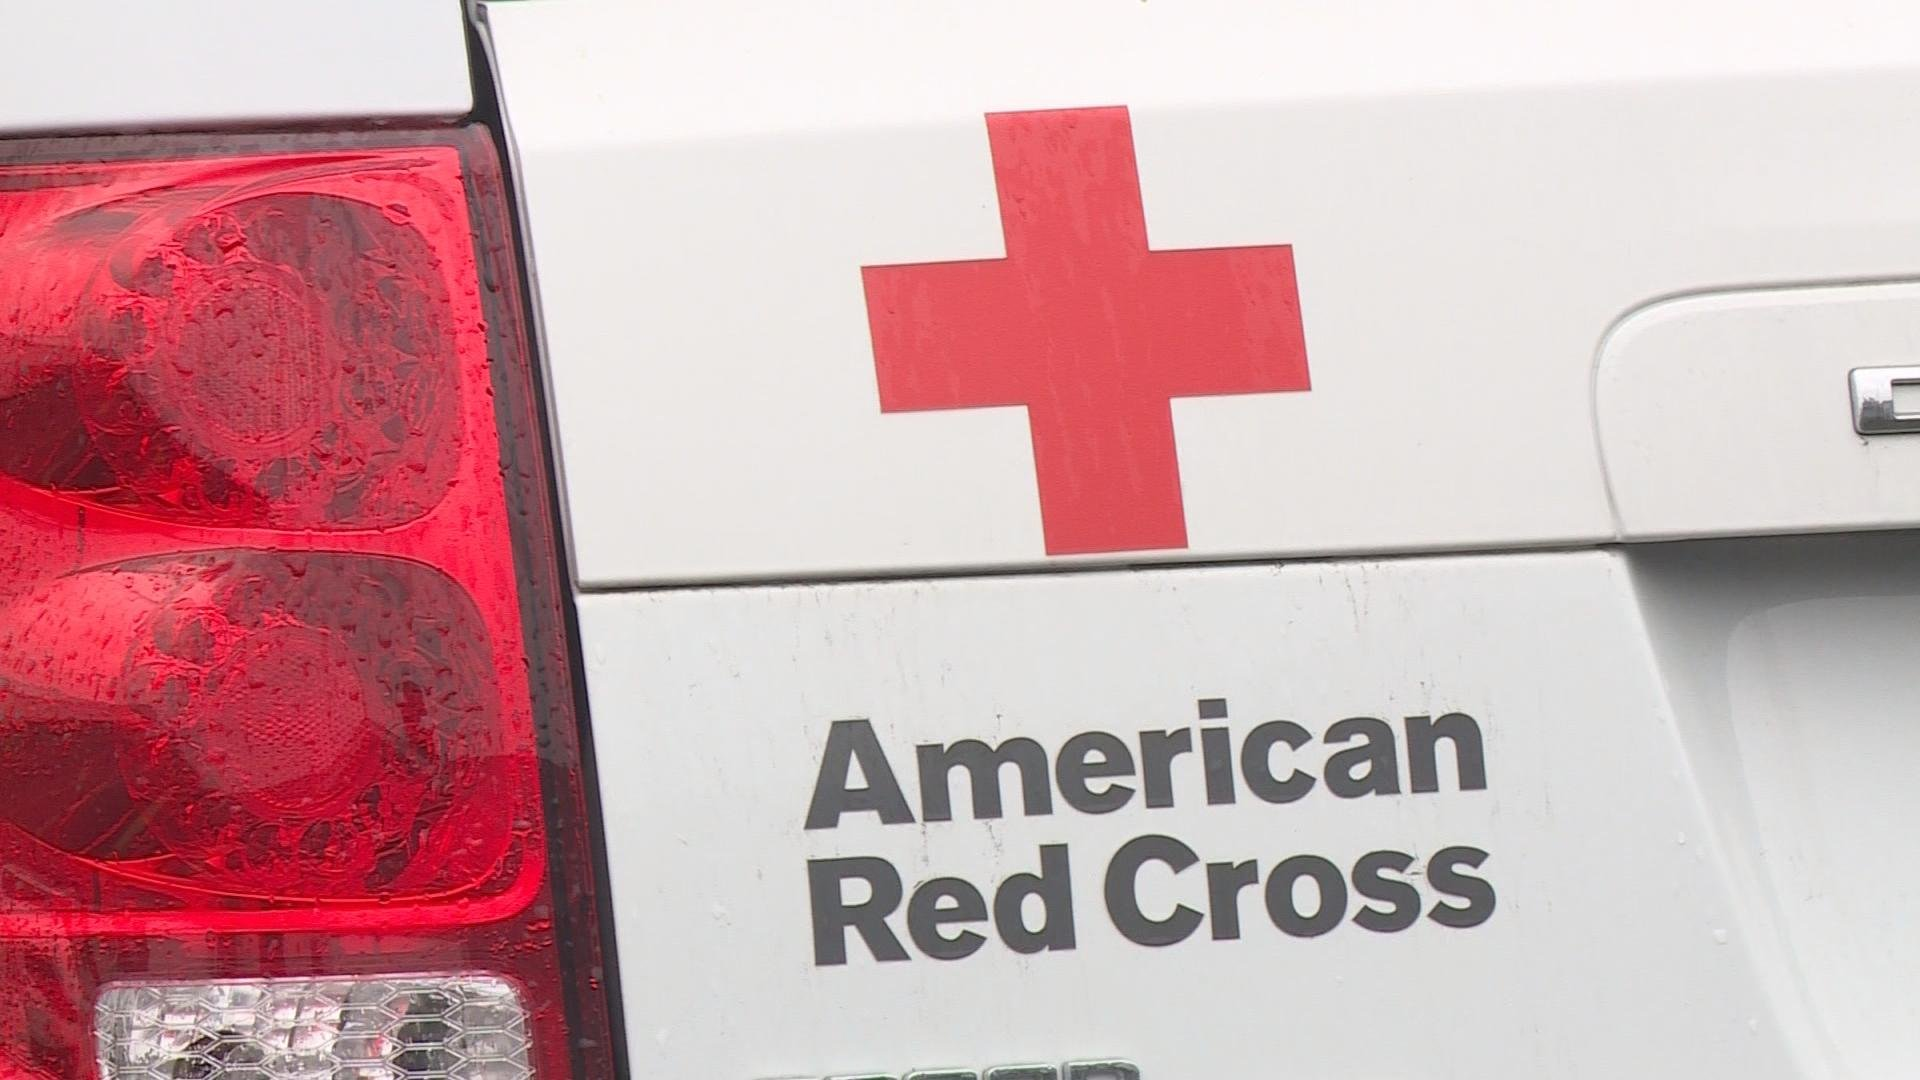 Red Cross volunteers from Central Virginia headed to Texas